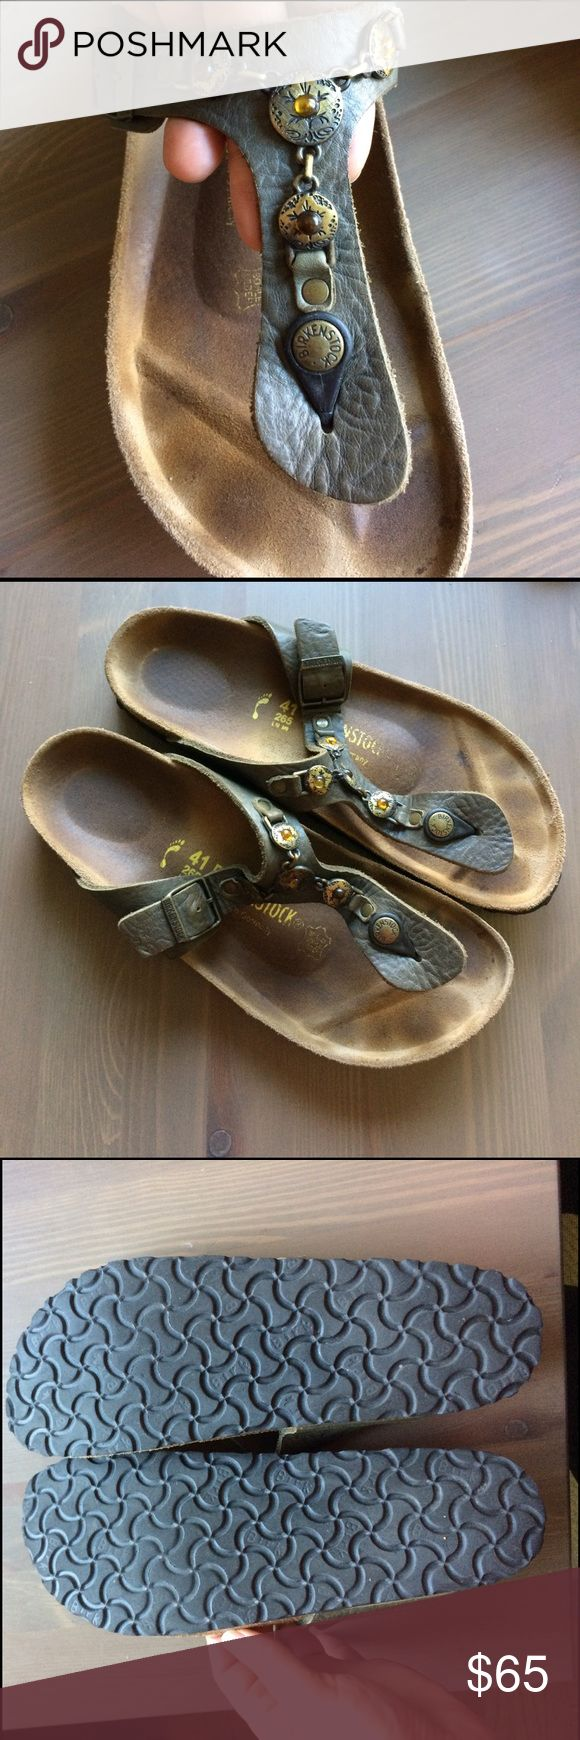 Size 41, Birkenstock Gizeh Sandals with Flare Comfy Birkenstock sandals, lovely shade of green with some flare! Size 41 (US 10-10.5), narrow (which is more like regular for Birks). Great used condition. Limited wear on soles! Birkenstock Shoes Sandals